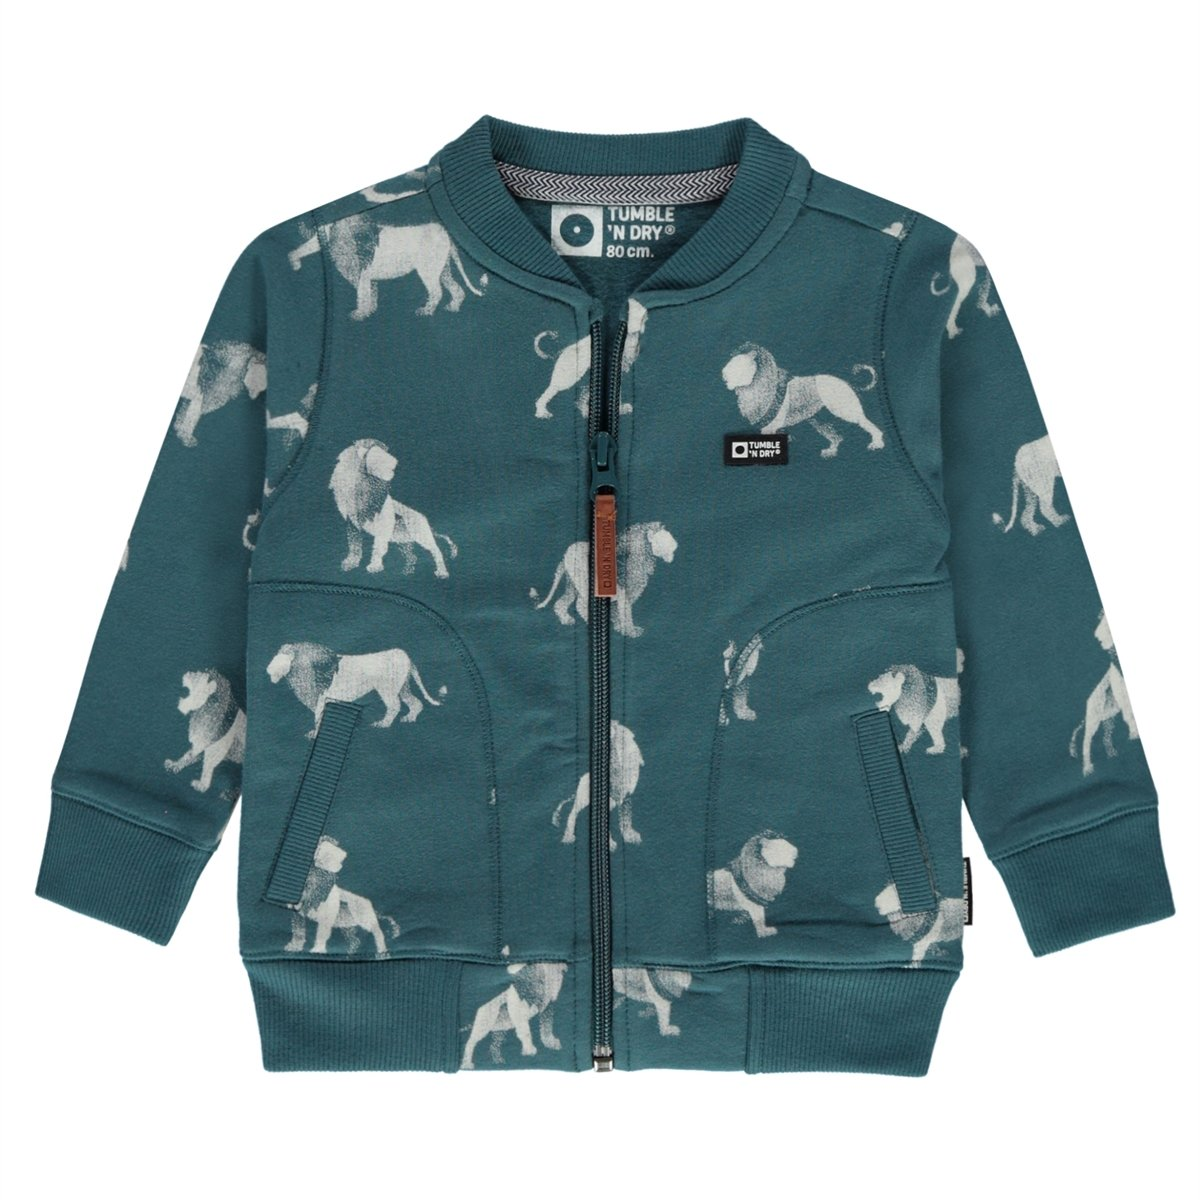 Tumble N Dry Krimme BOYS LO CARDIGAN in Green Petrol